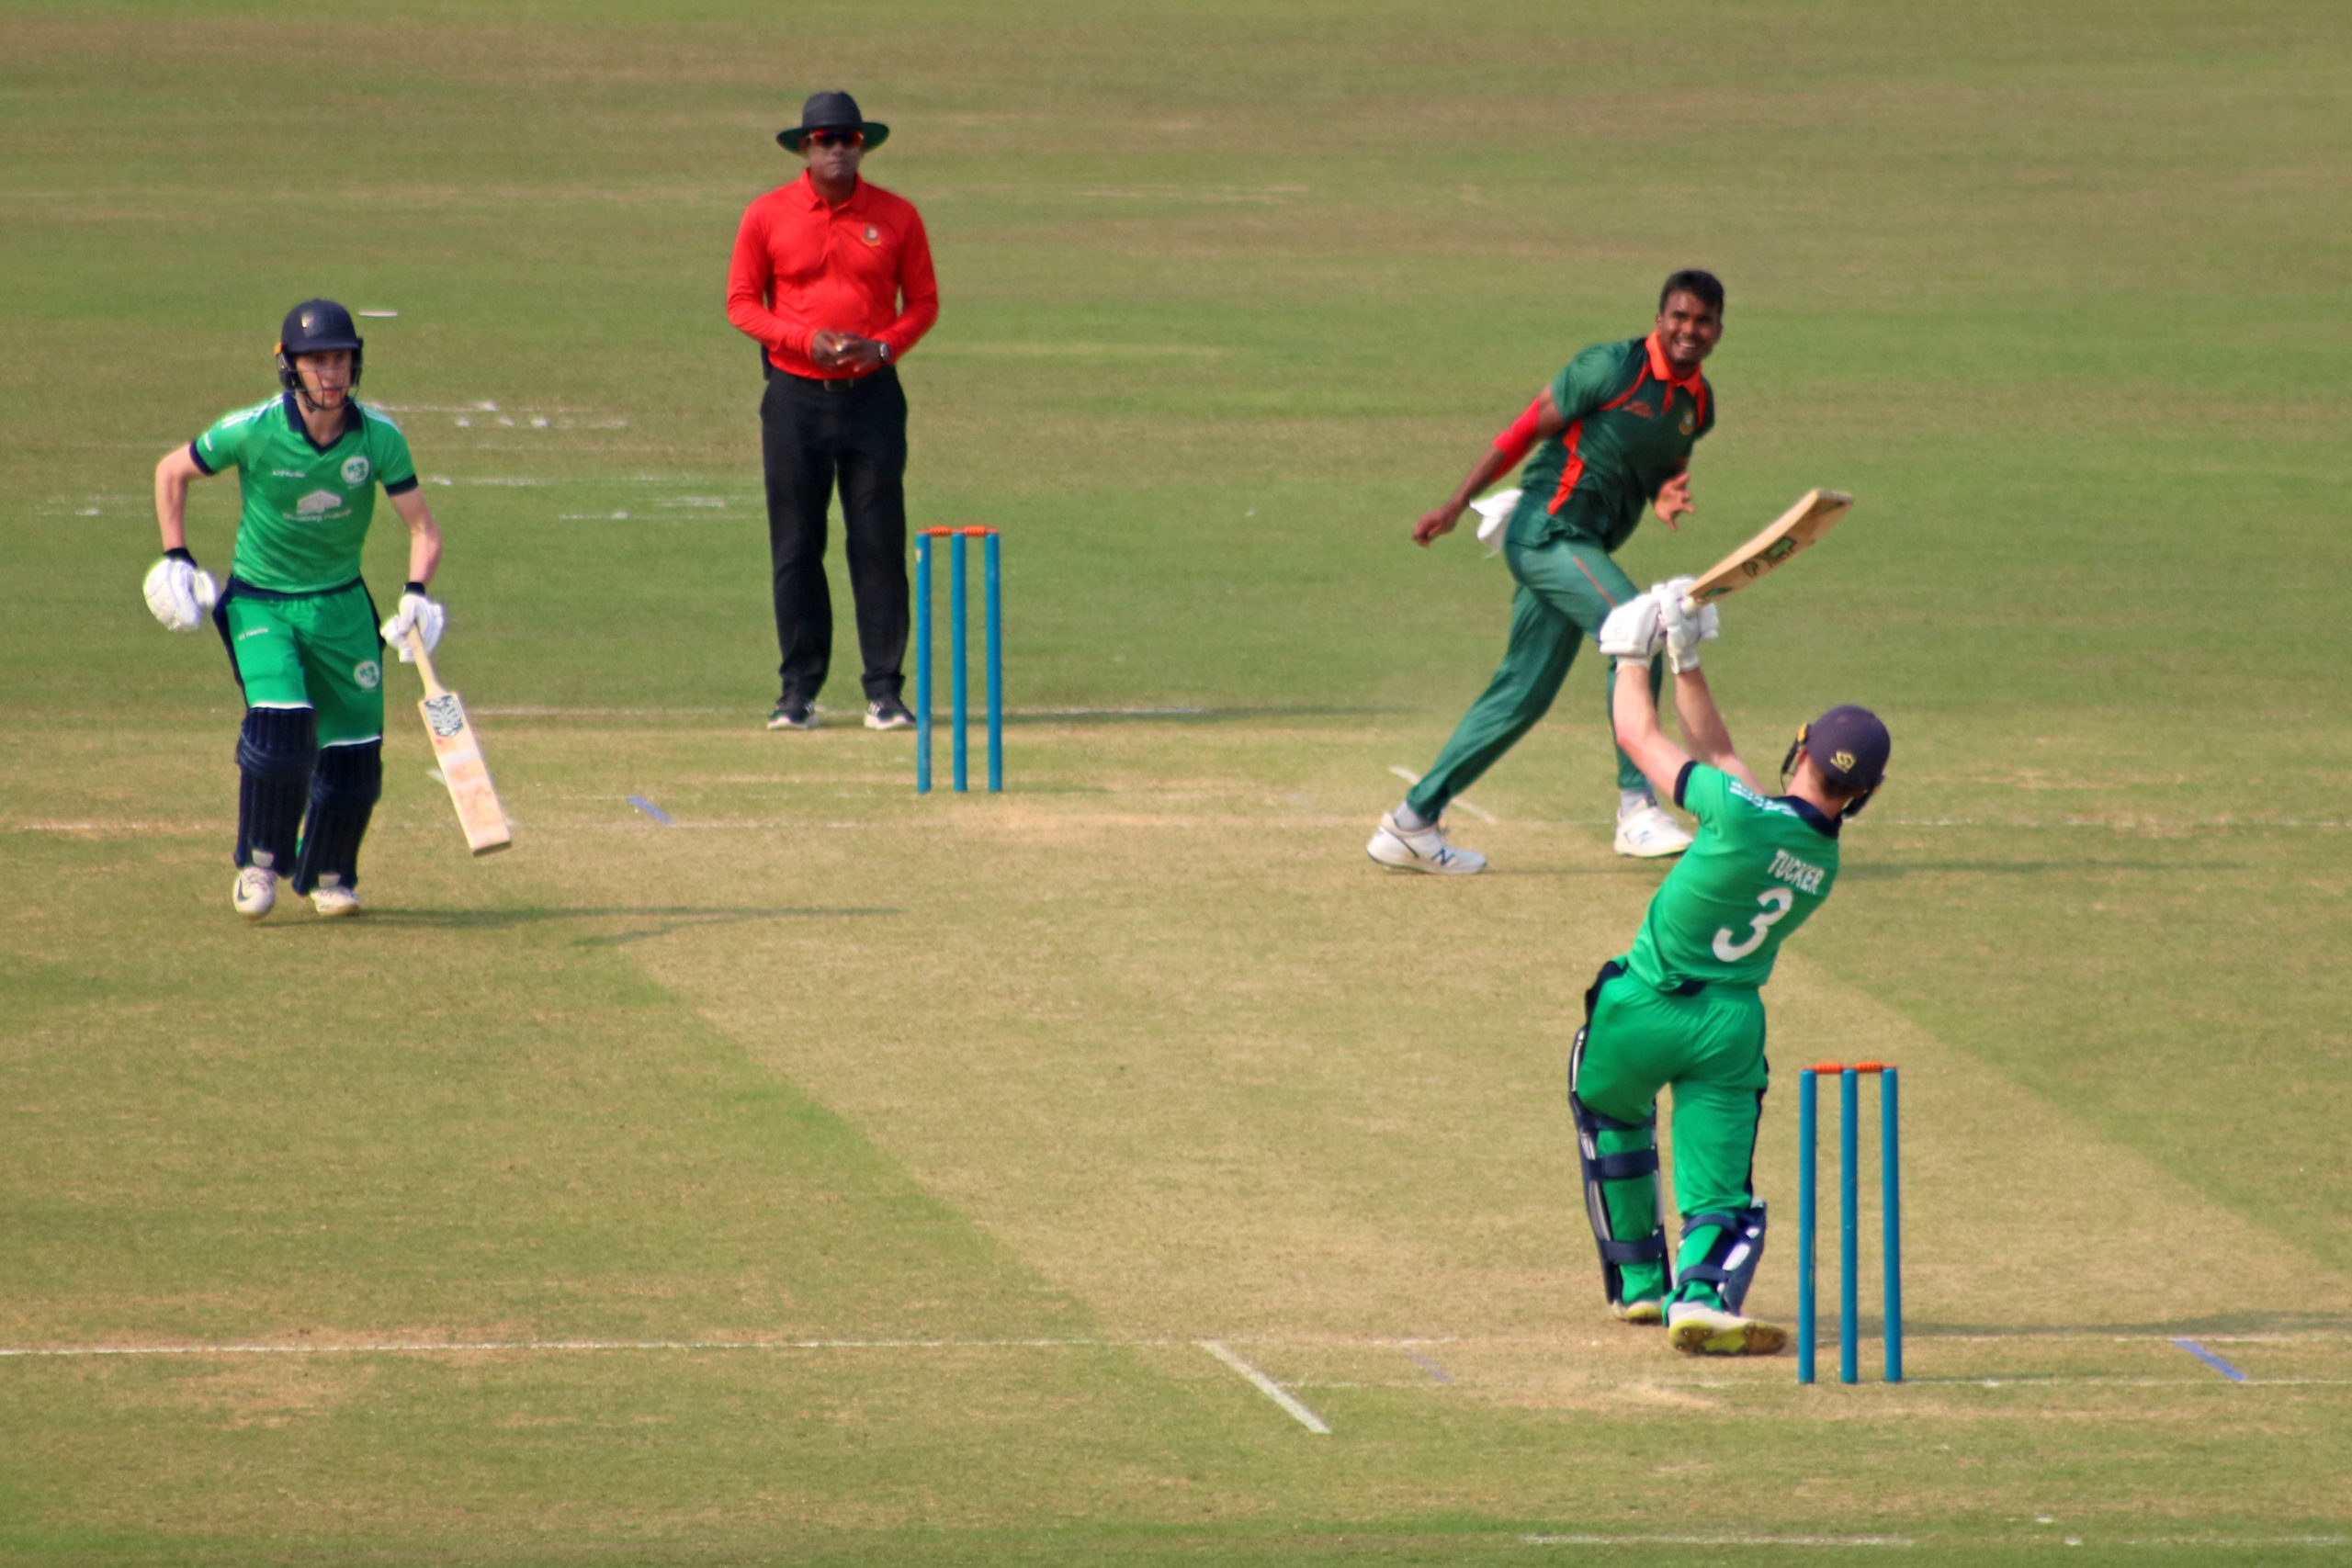 Cricket Ireland: Tector reflects on fourth ODM as Wolves tour itinerary amended due to travel plans change